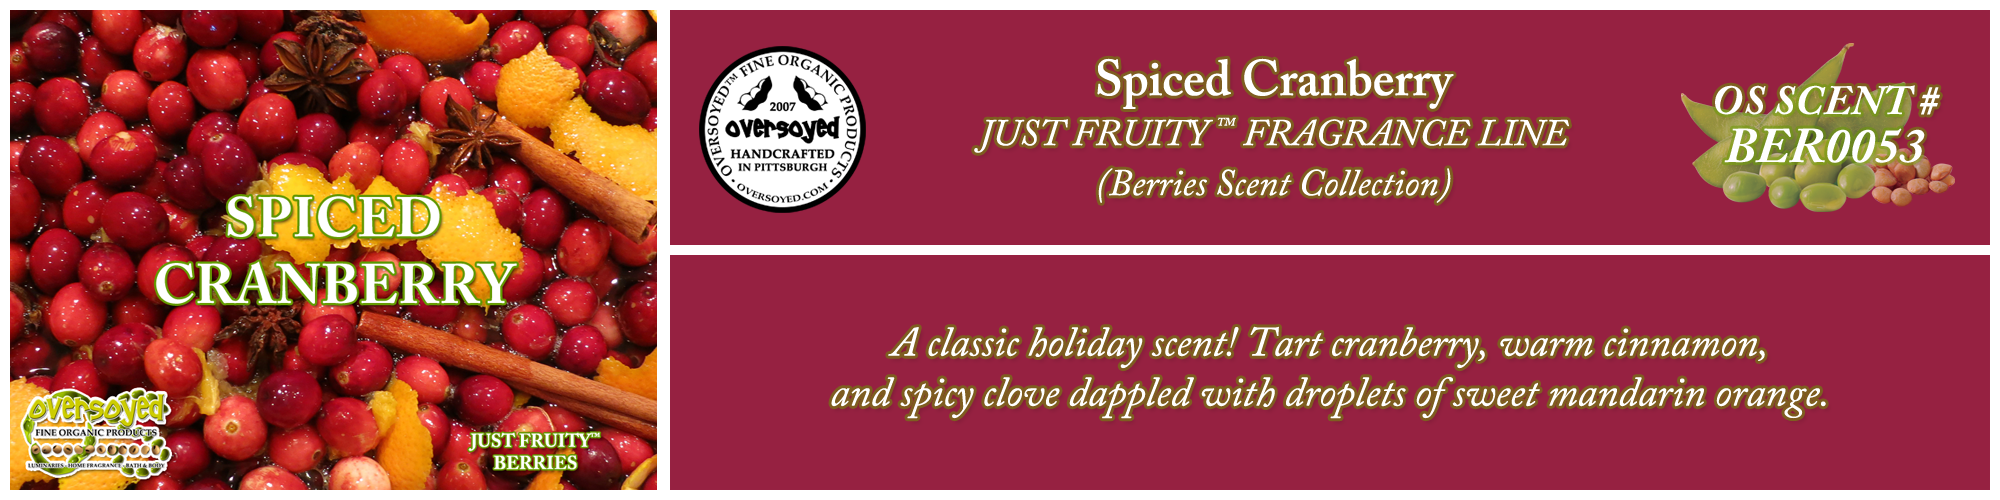 Spiced Cranberry Handcrafted Products Collection